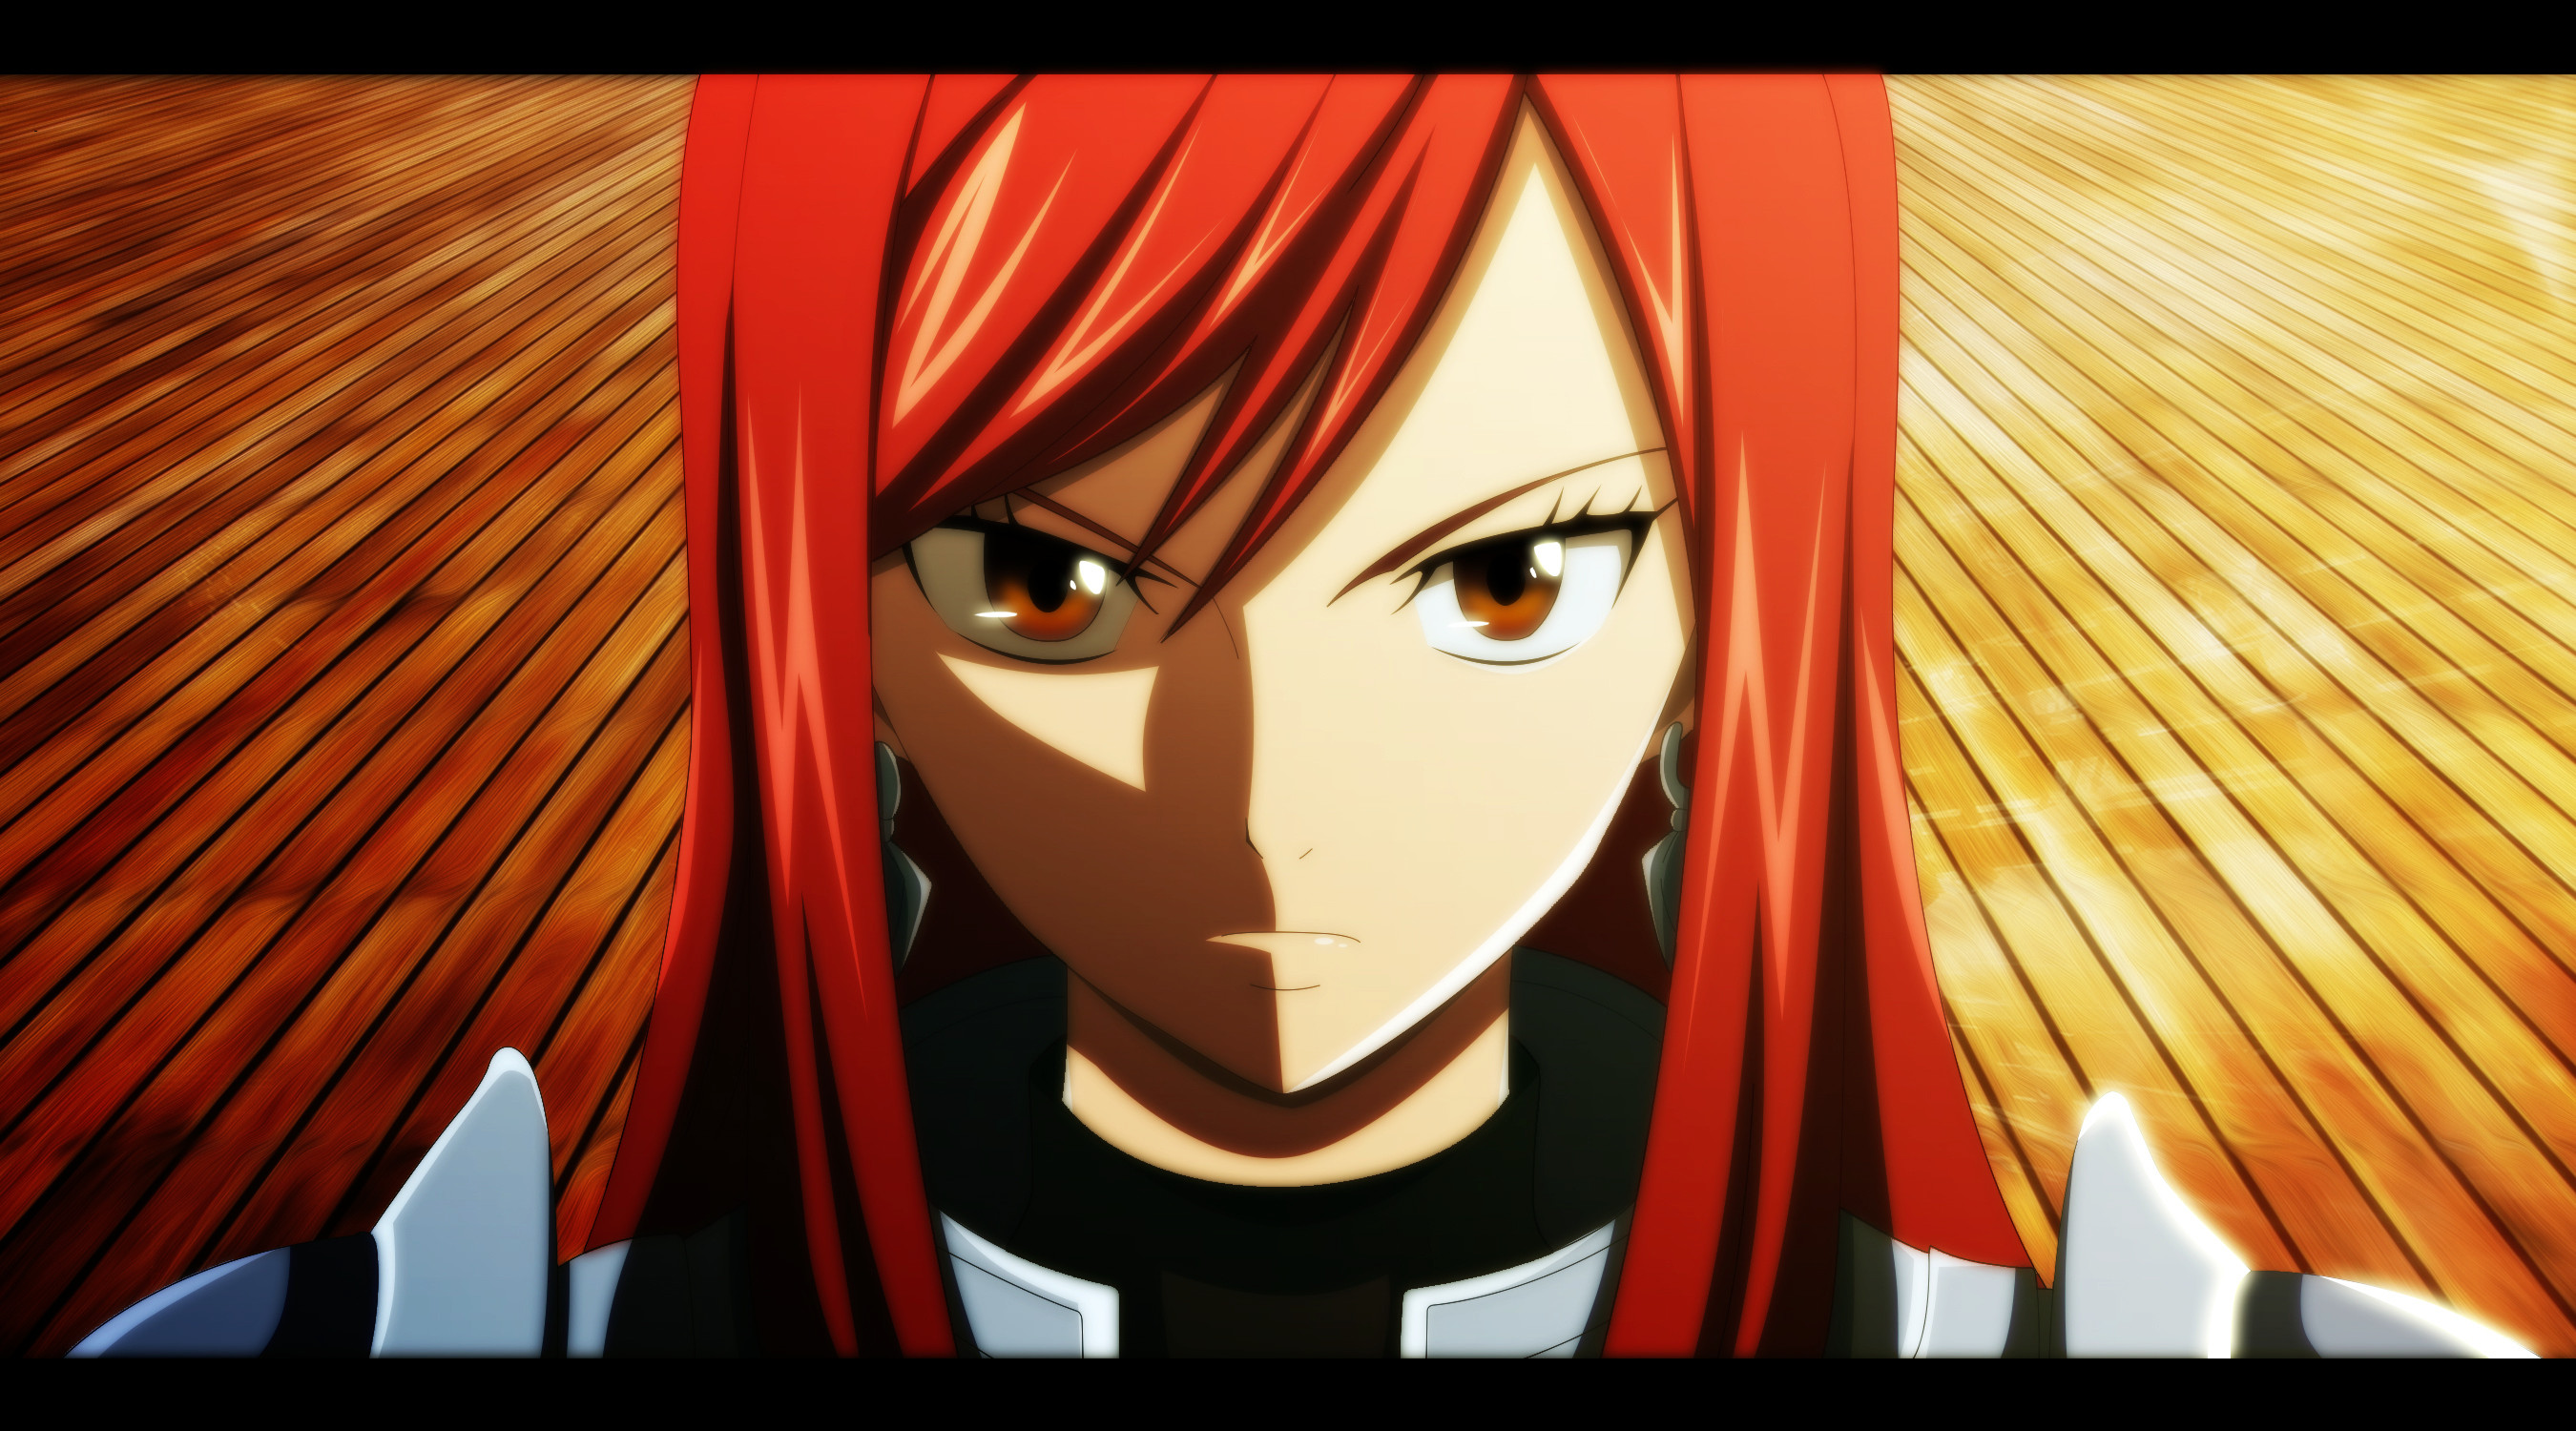 2700x1500 Anime - Fairy Tail Erza Scarlet Wallpaper